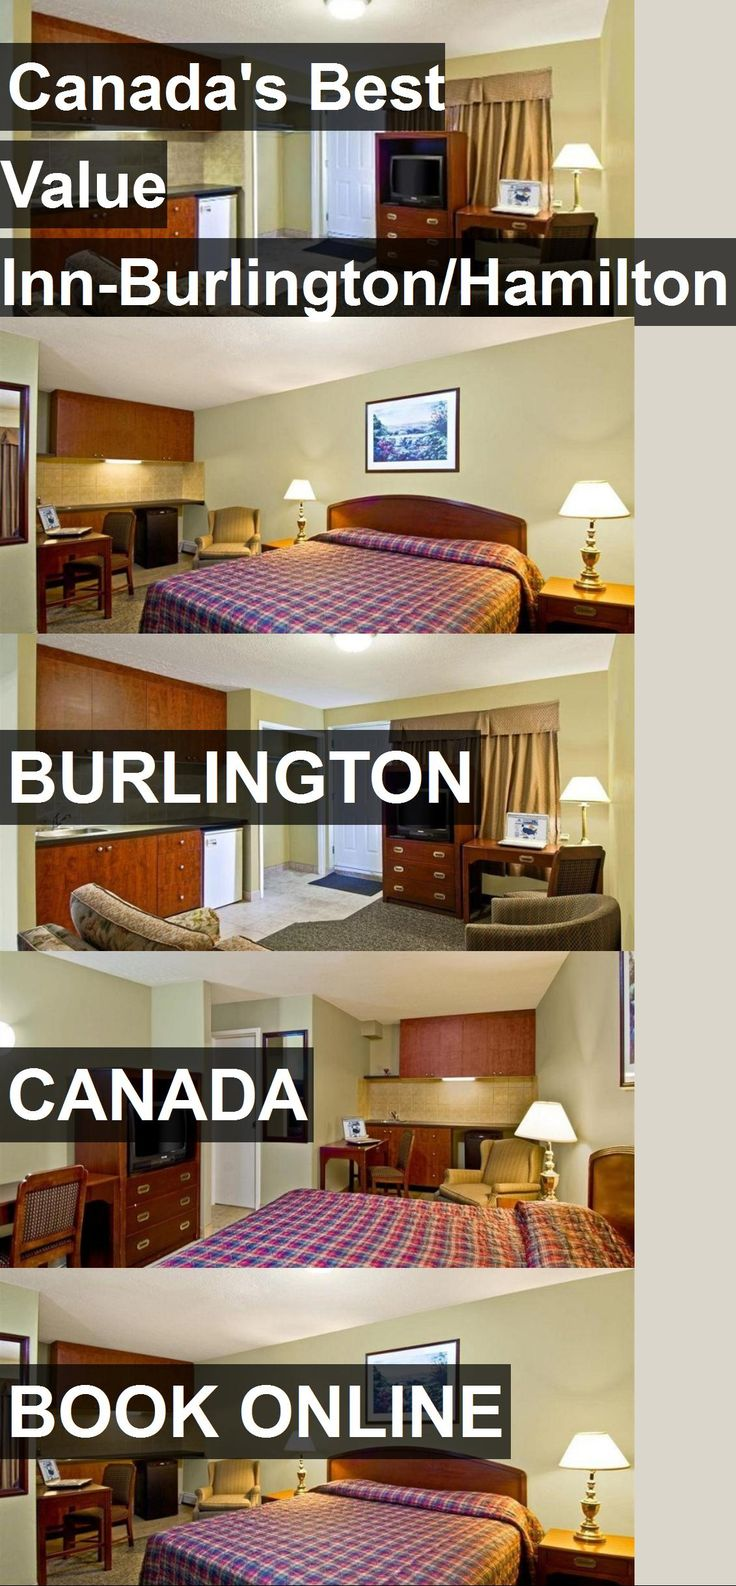 Hotel Canada's Best Value Inn-Burlington/Hamilton in Burlington, Canada. For more information, photos, reviews and best prices please follow the link. #Canada #Burlington #Canada'sBestValueInn-Burlington/Hamilton #hotel #travel #vacation